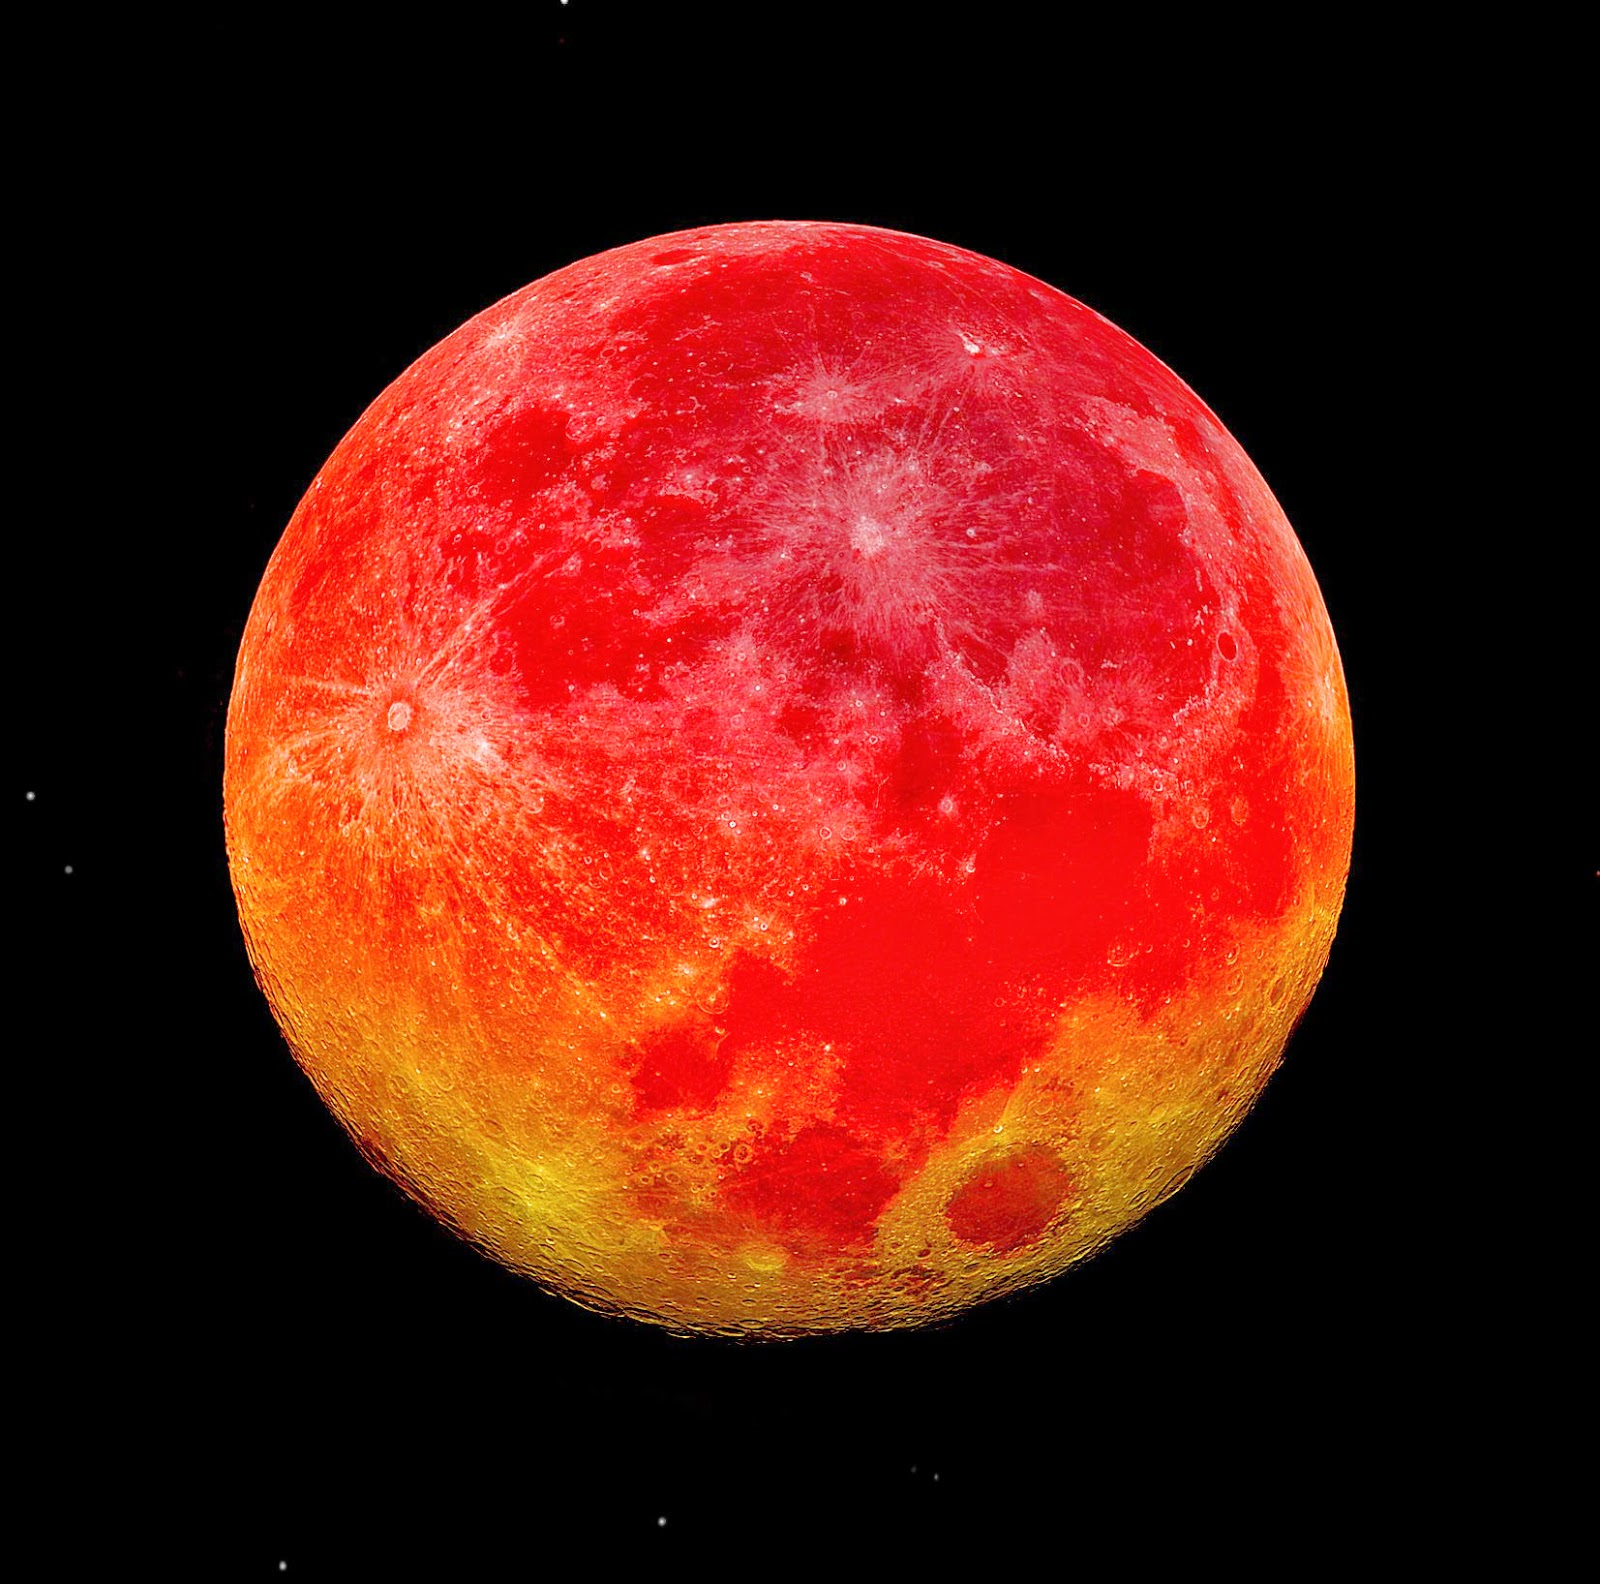 blood moon tonight ottawa - photo #42